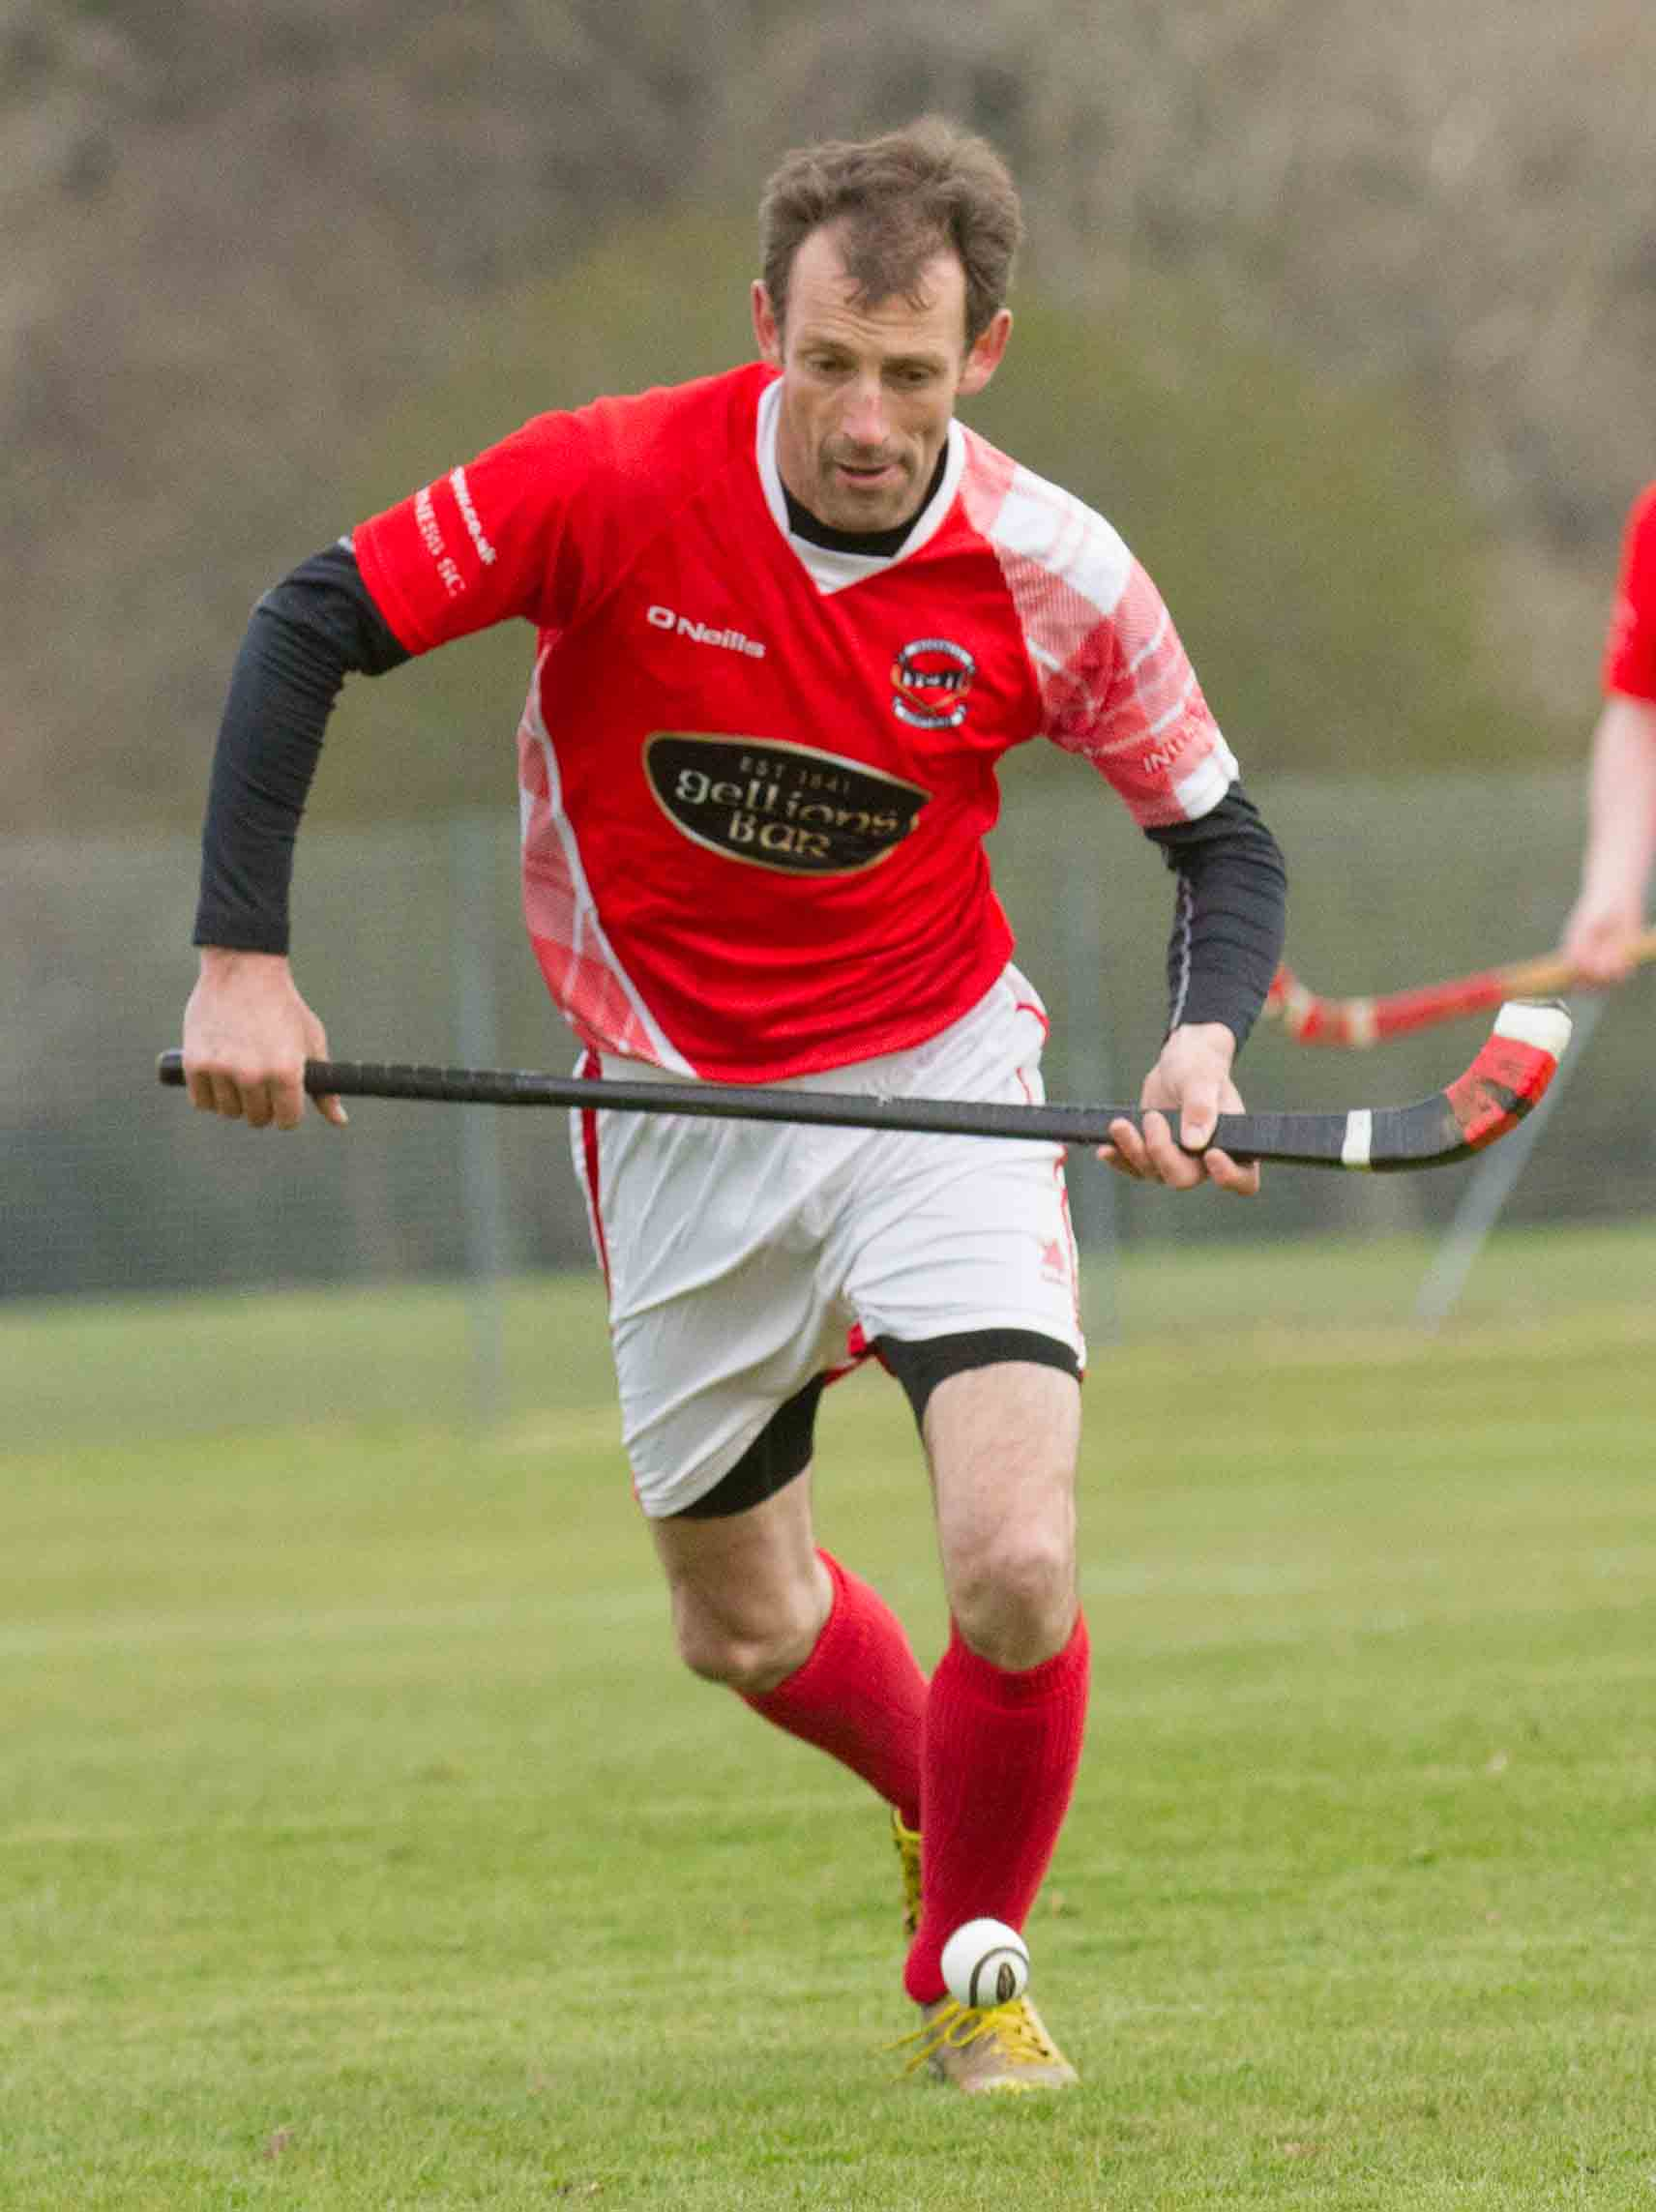 Photo: The Shinty Round Up – Saturday 23 April 2016 - UPDATED!